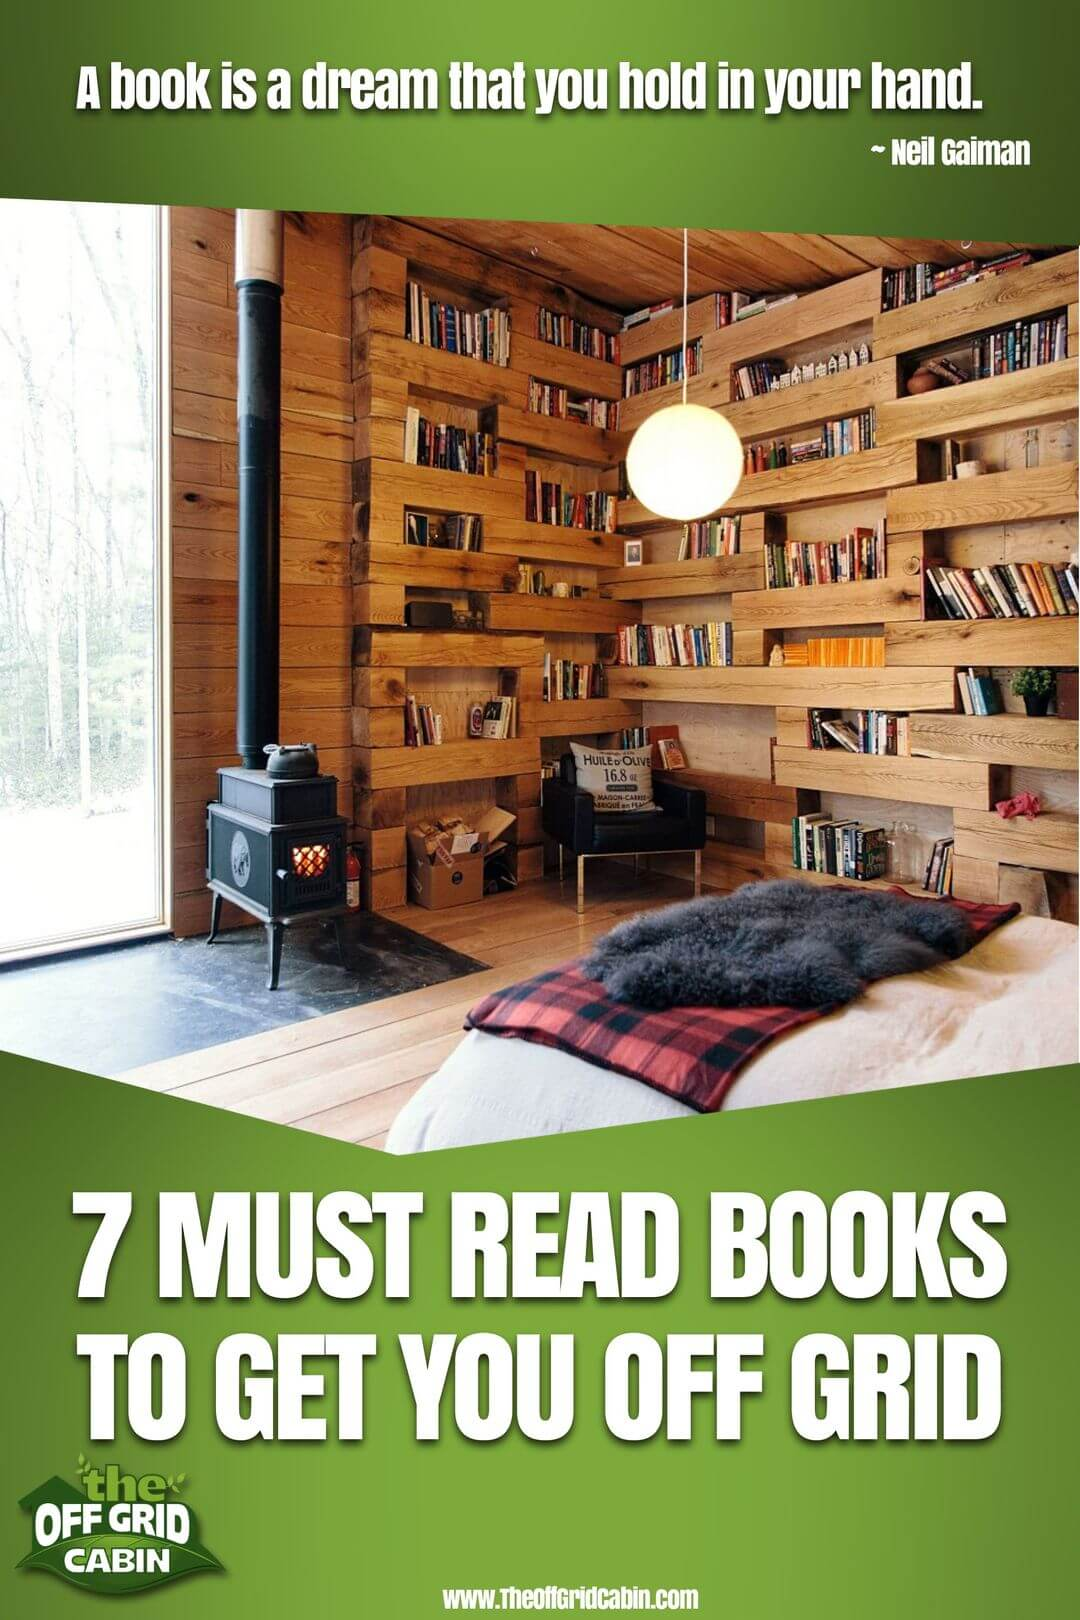 7 must read books to get you off grid